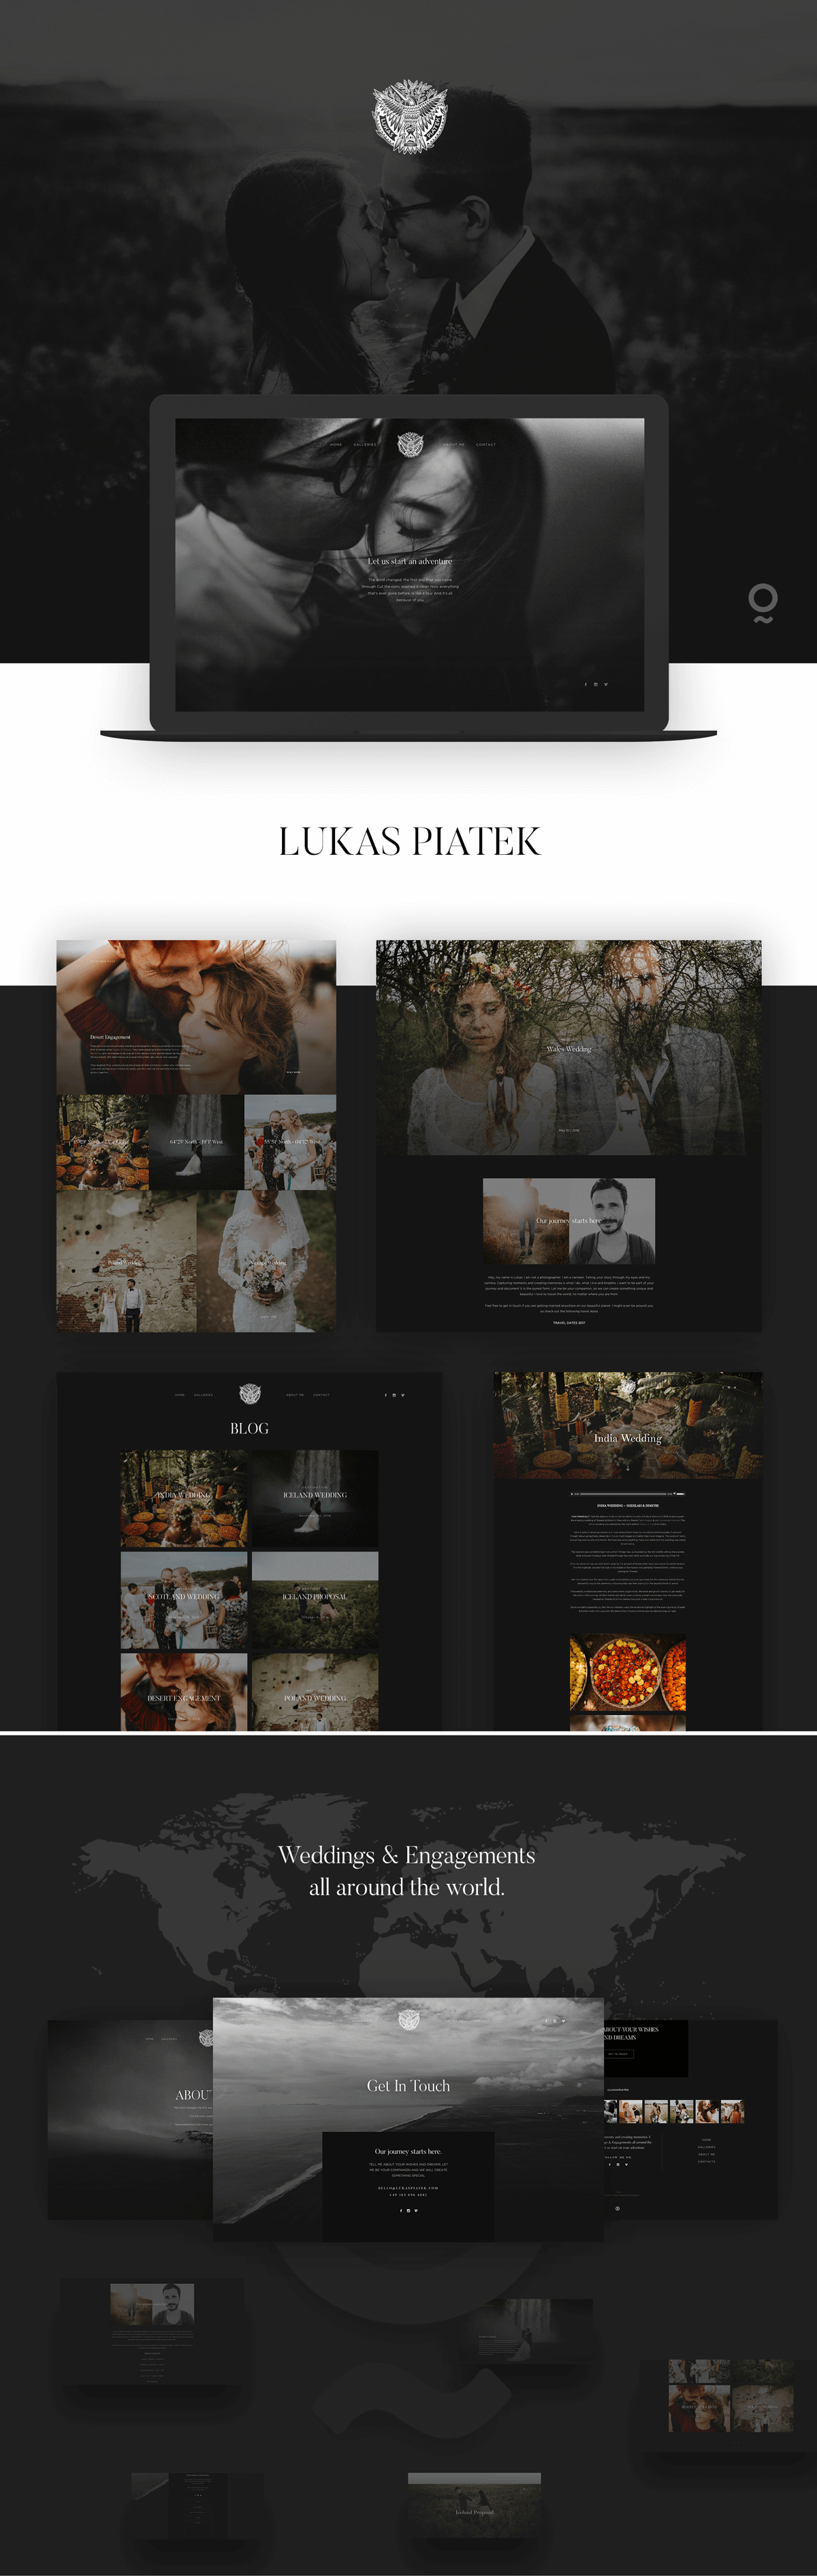 Lukas-Piatek-custom photography-website-design-by-Flothemes